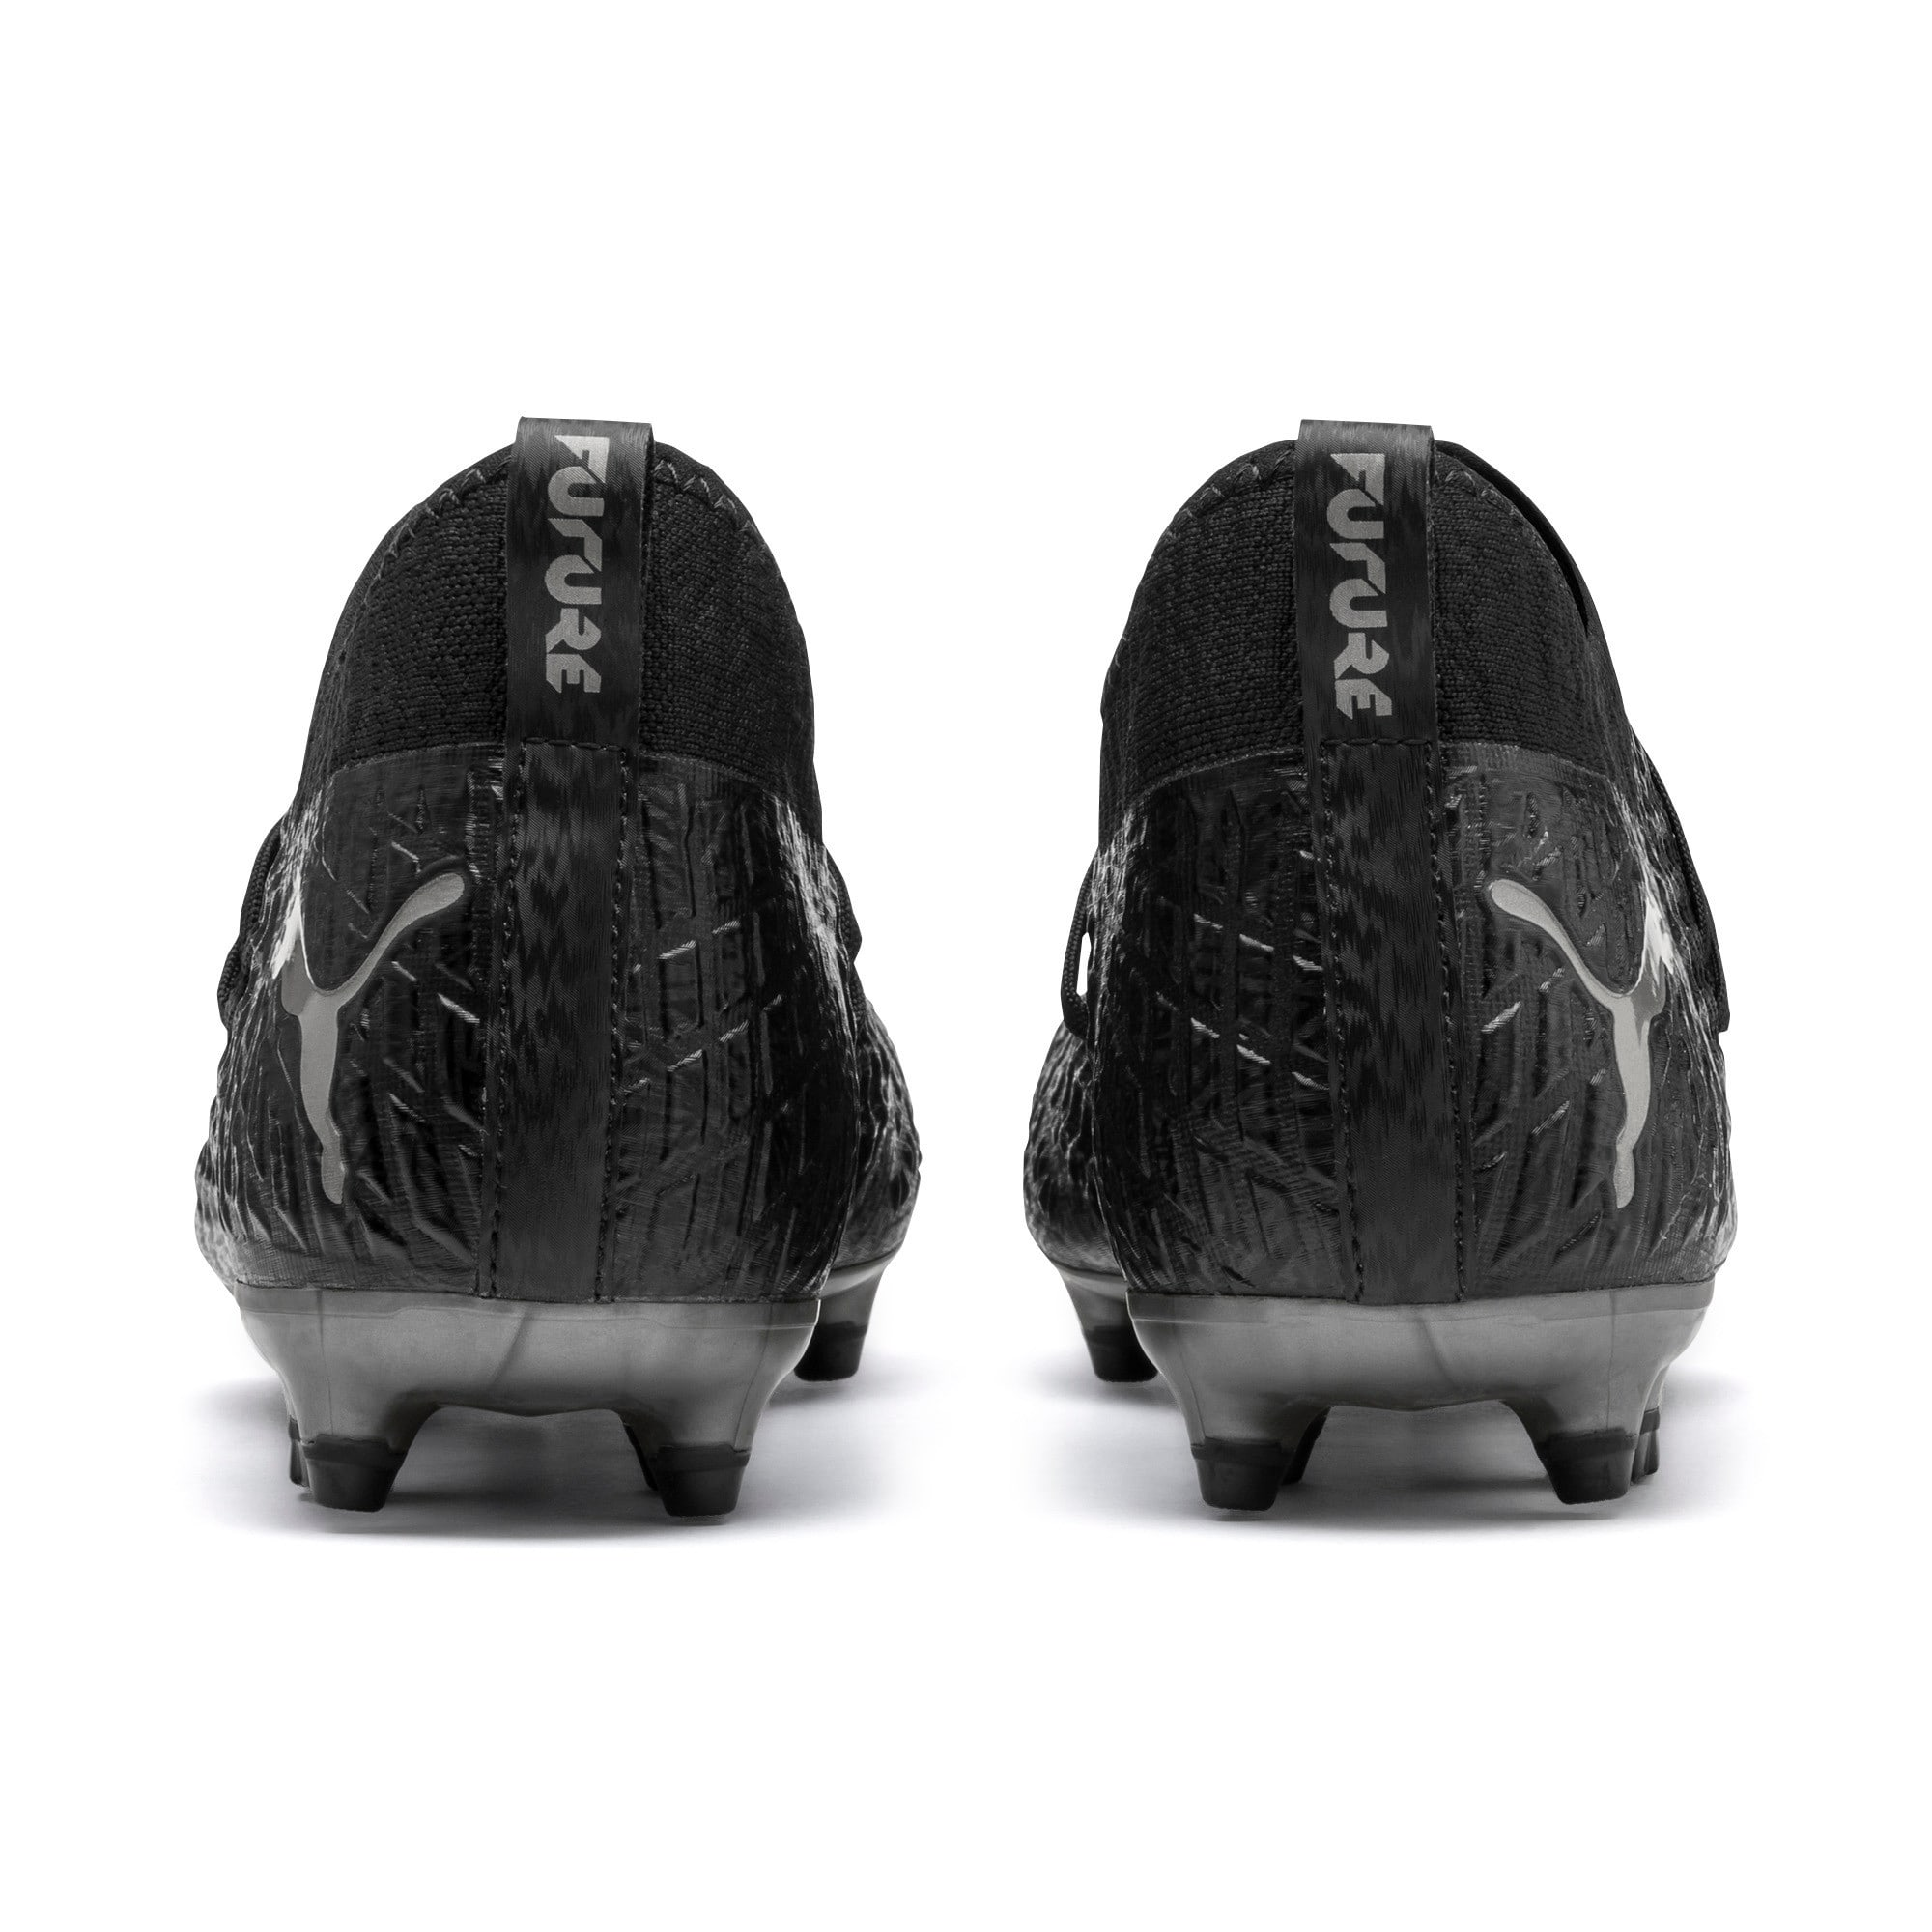 Thumbnail 4 of FUTURE 4.3 NETFIT FG/AG voetbalschoenen voor heren, Black-Black-Puma Aged Silver, medium